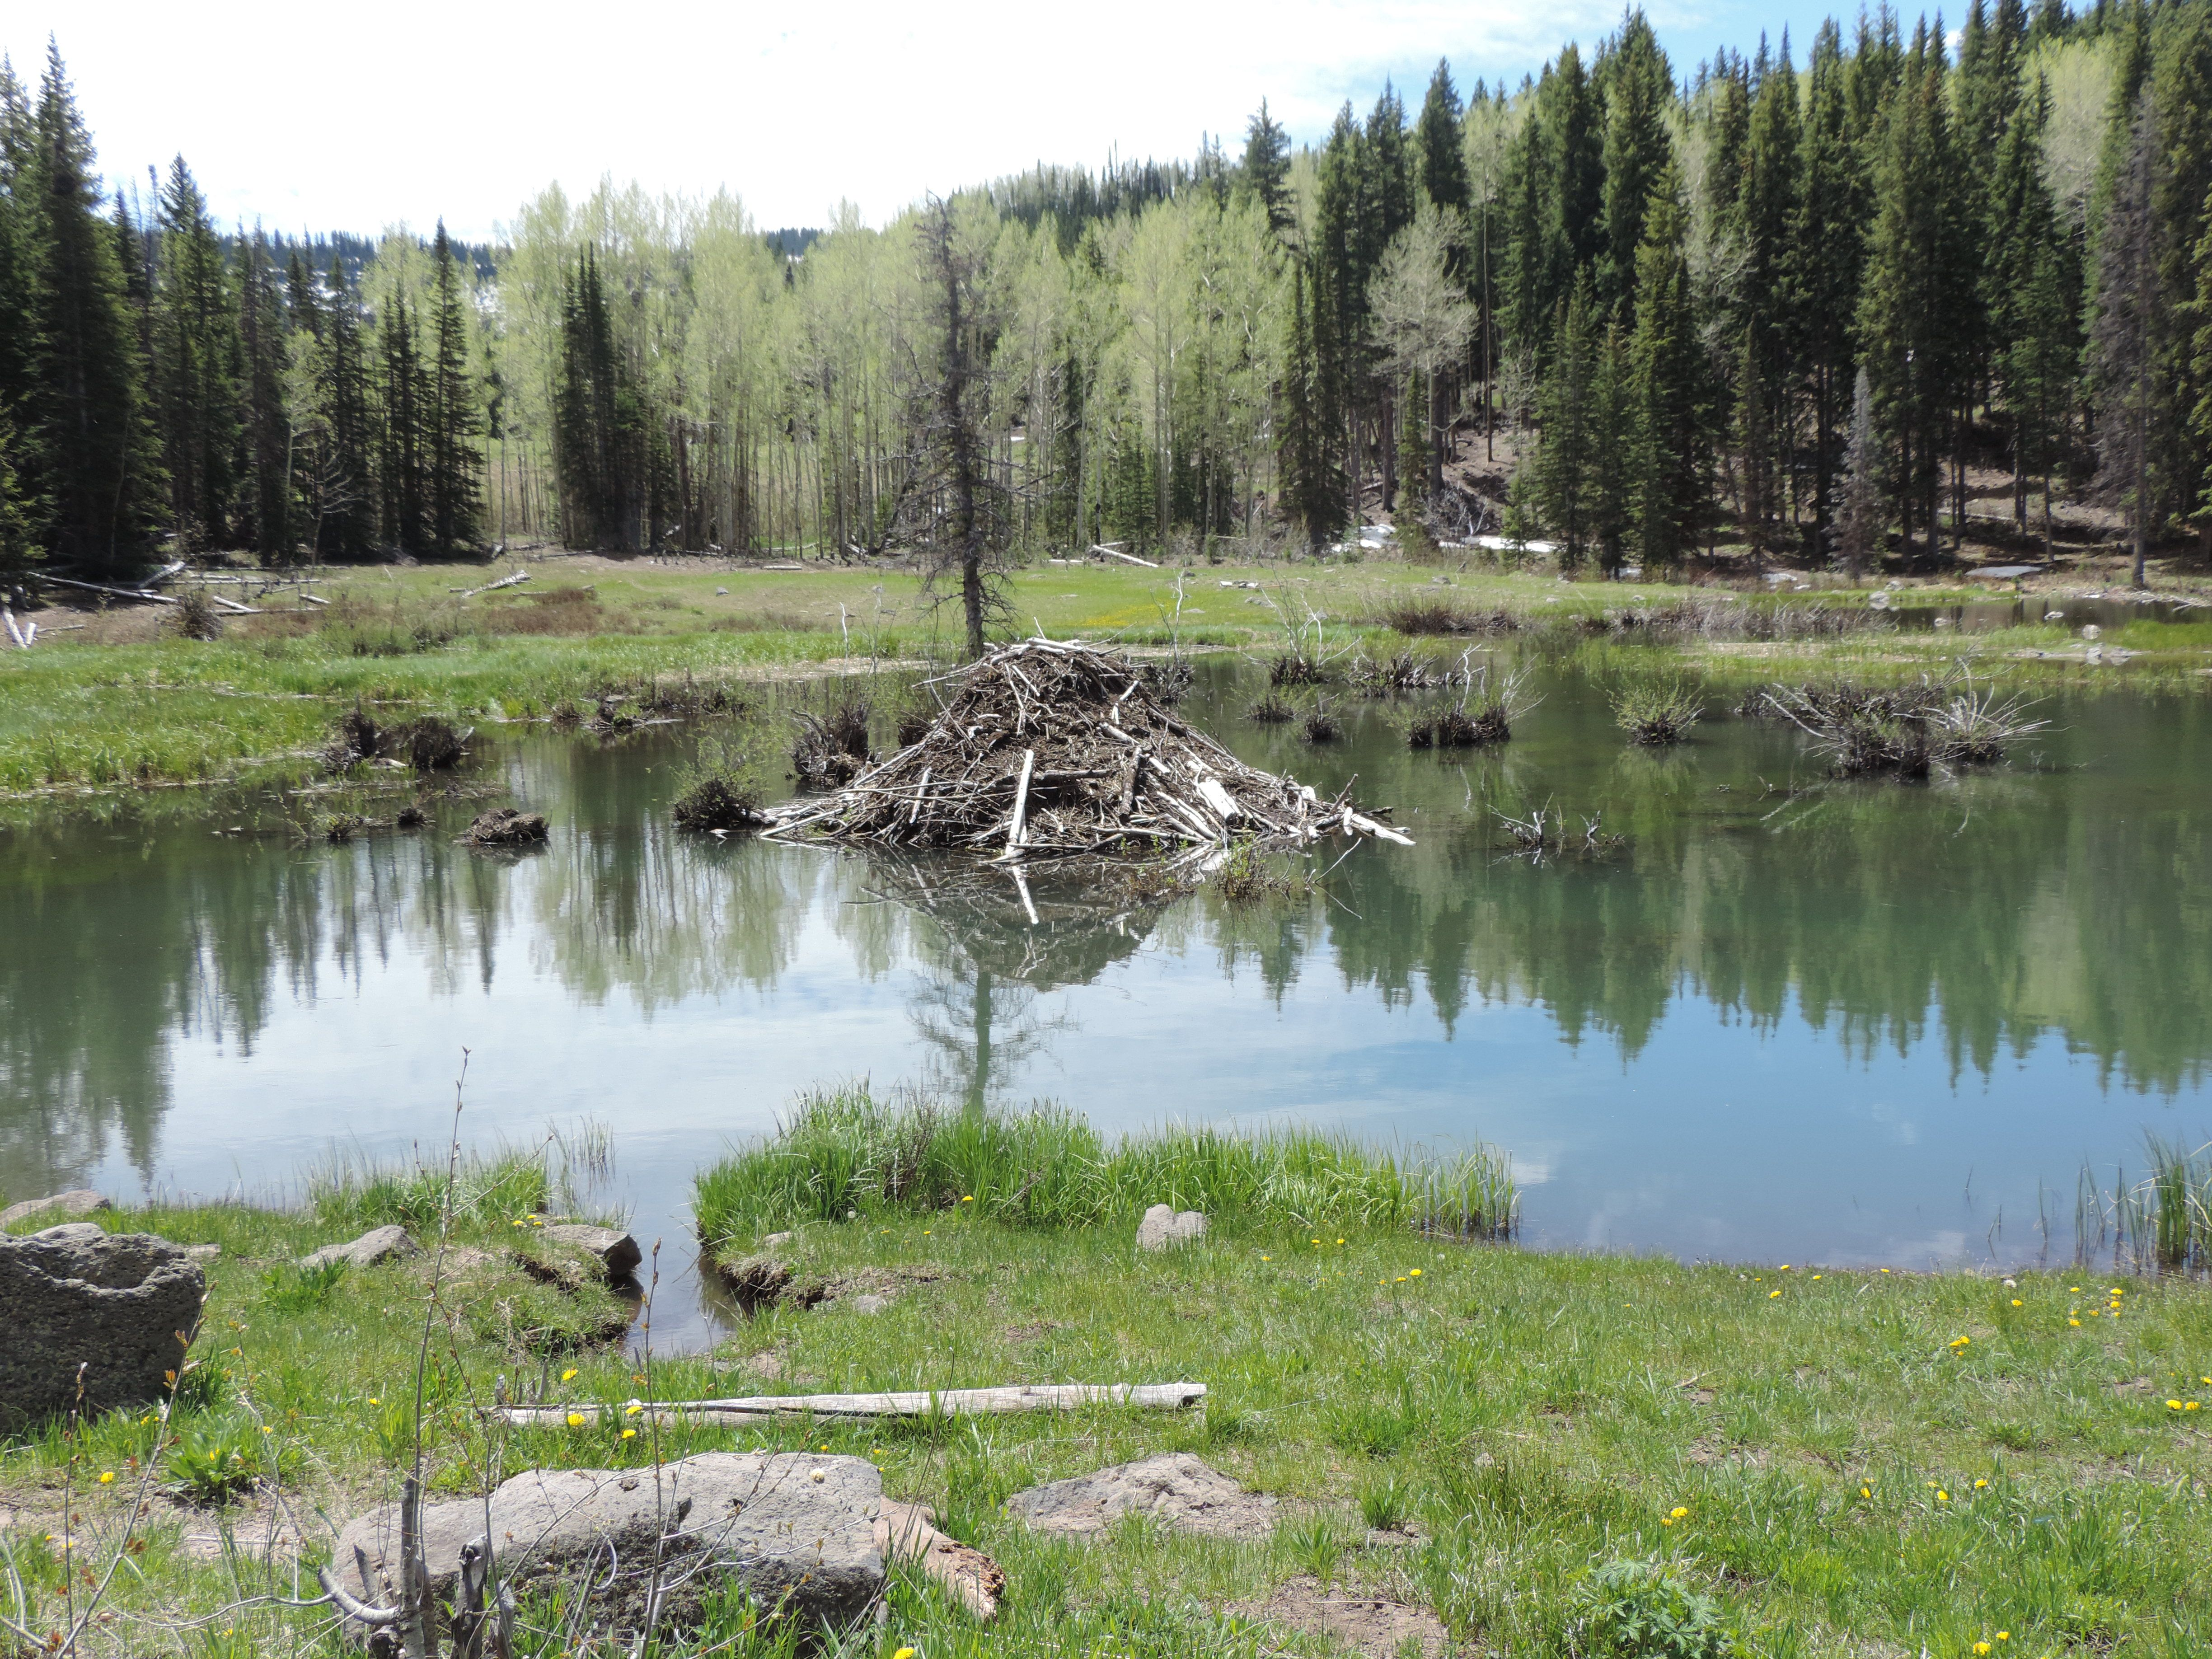 Beaver pond on the Grand Mesa in Colorado